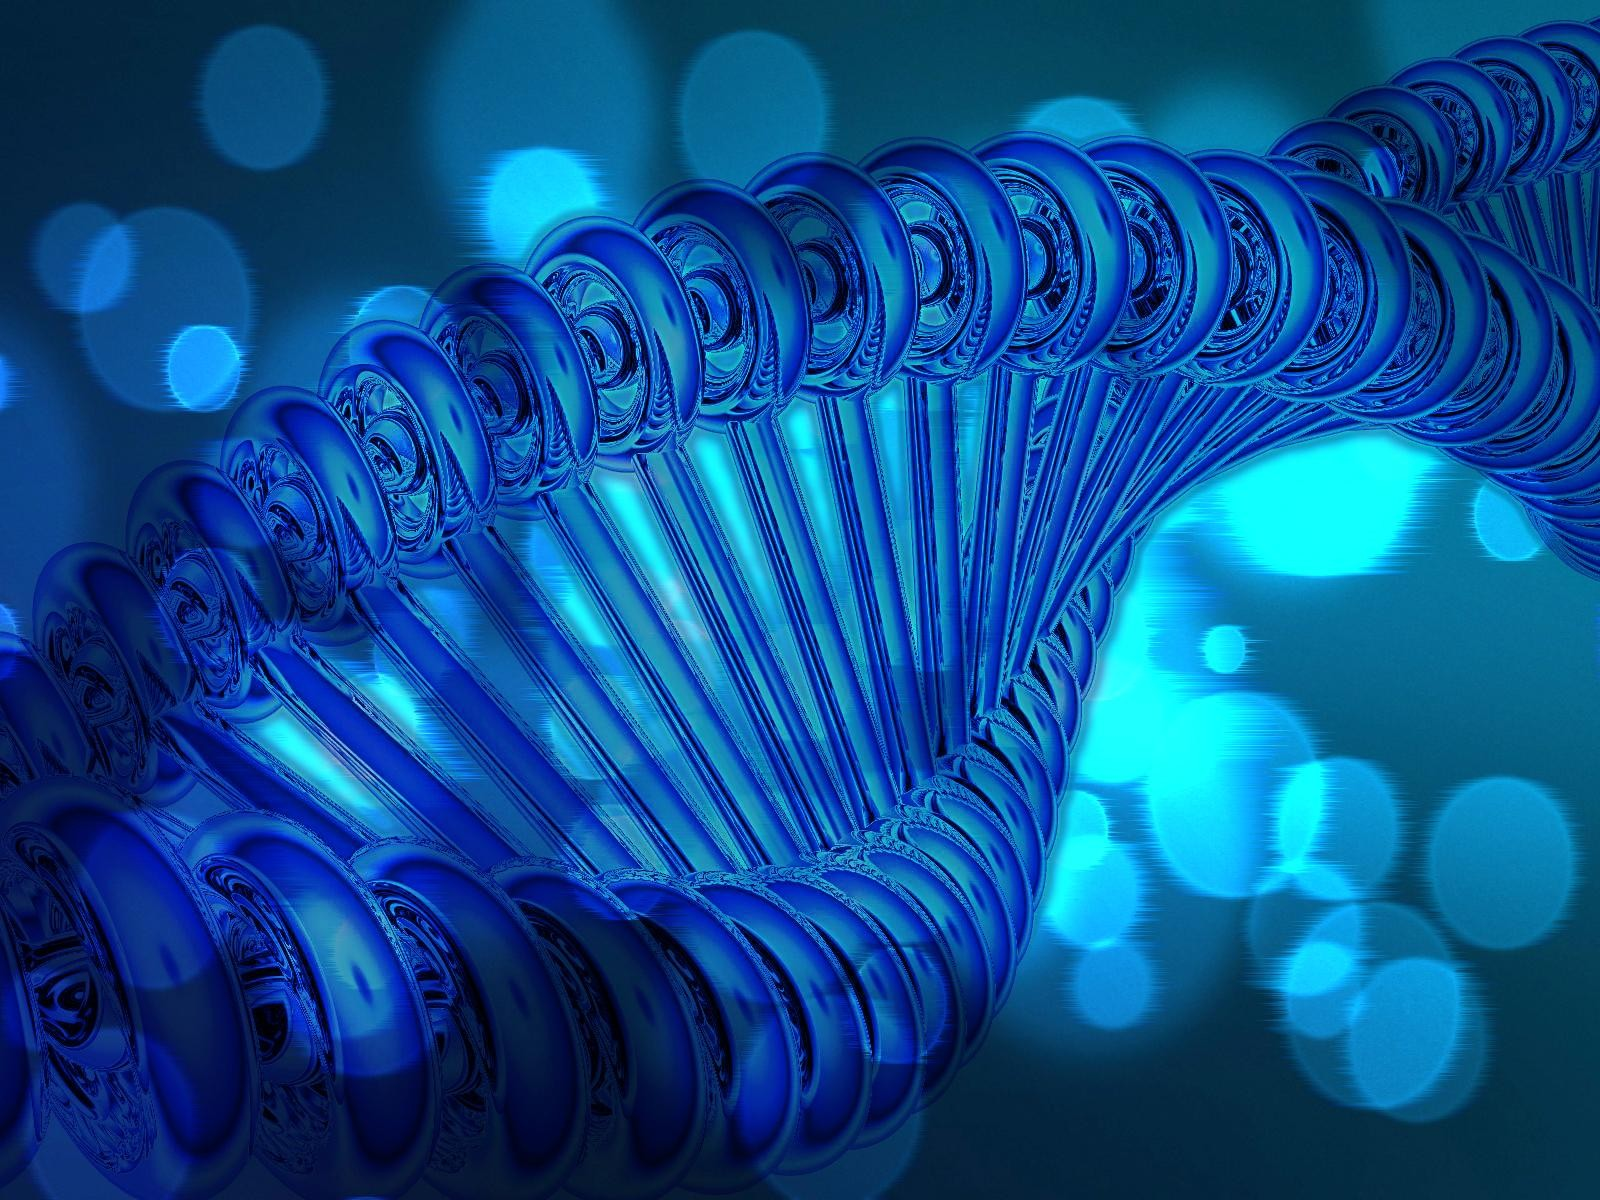 Blue DNA Wallpaper 1600x1200 Blue DNA Dna Wallpaper High Resolution 1600x1200